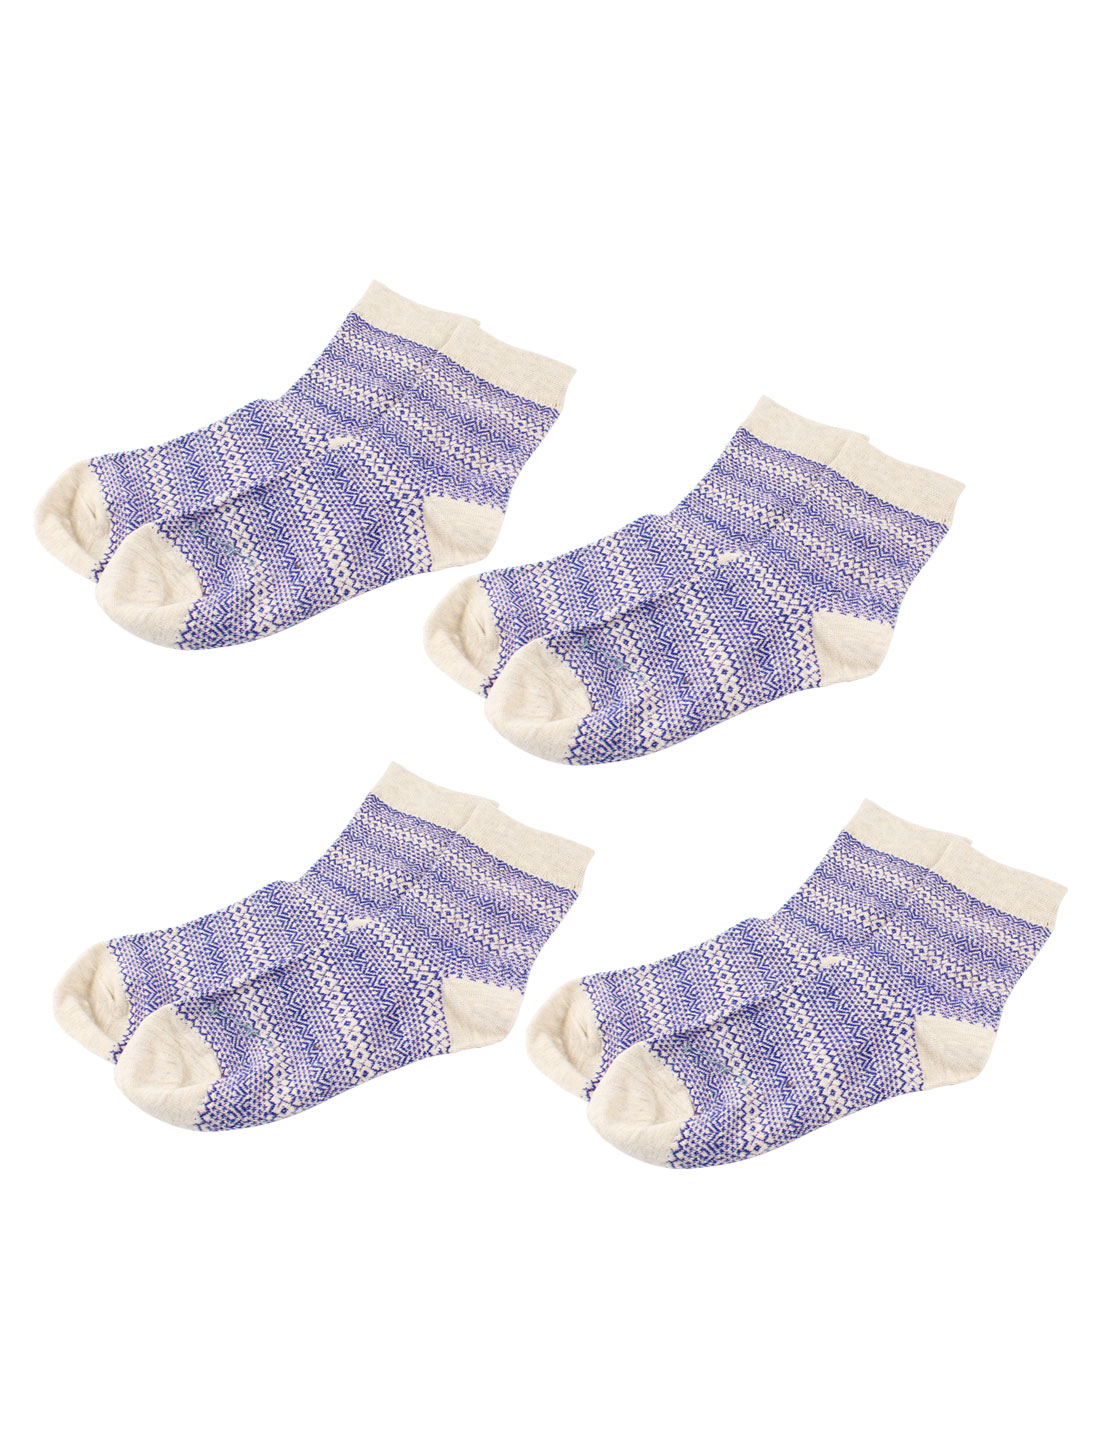 Women Folk Pattern Stretchy Ankle High Sport Casual Socks Beige Purple 4 Pairs